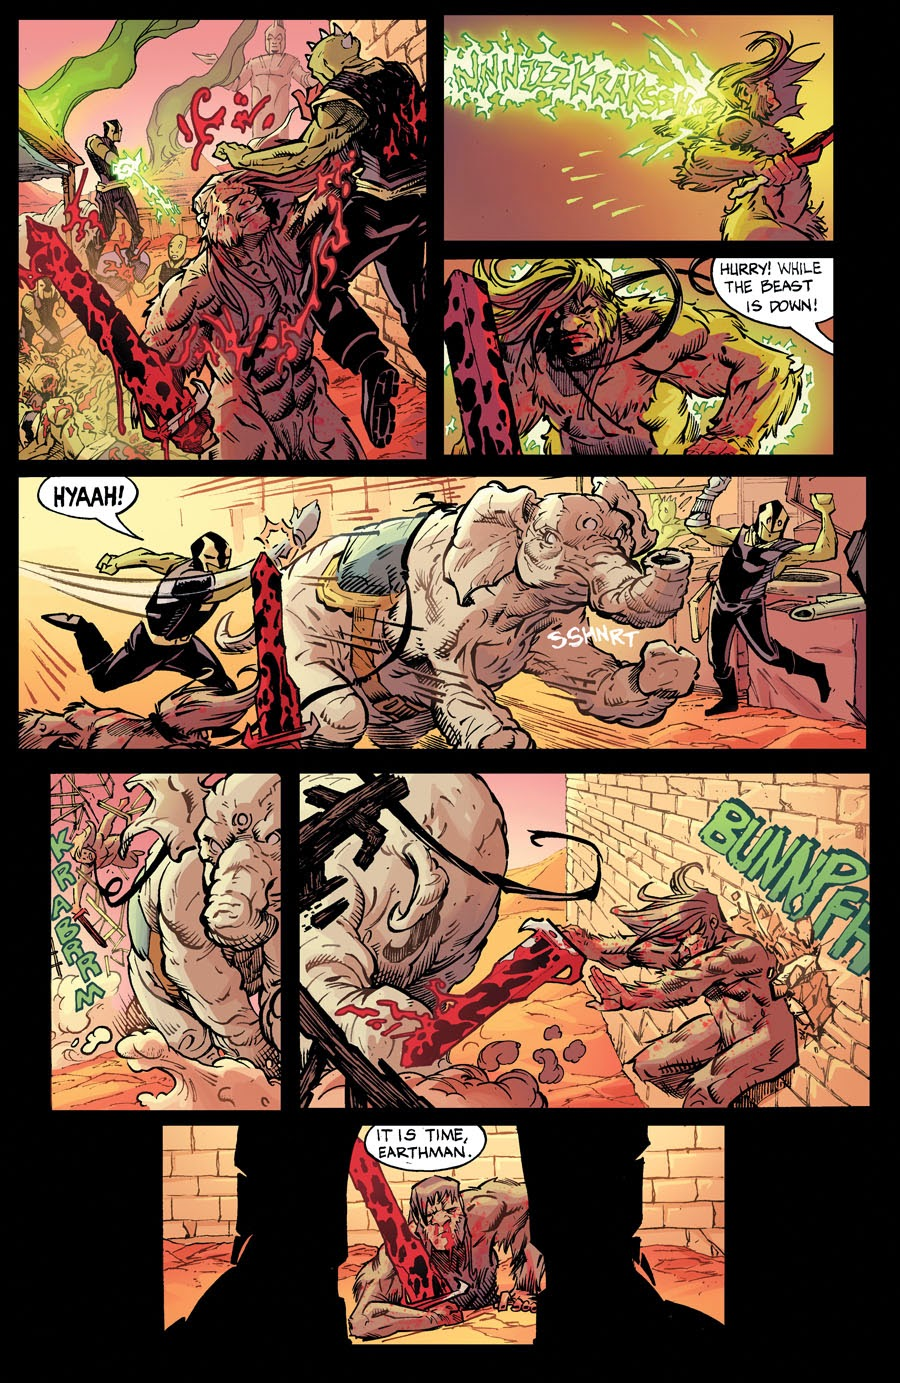 bigfoot sword of the earthman issue six issue 6 page three bigfoot comic book bigfoot graphic novel barbarian comic